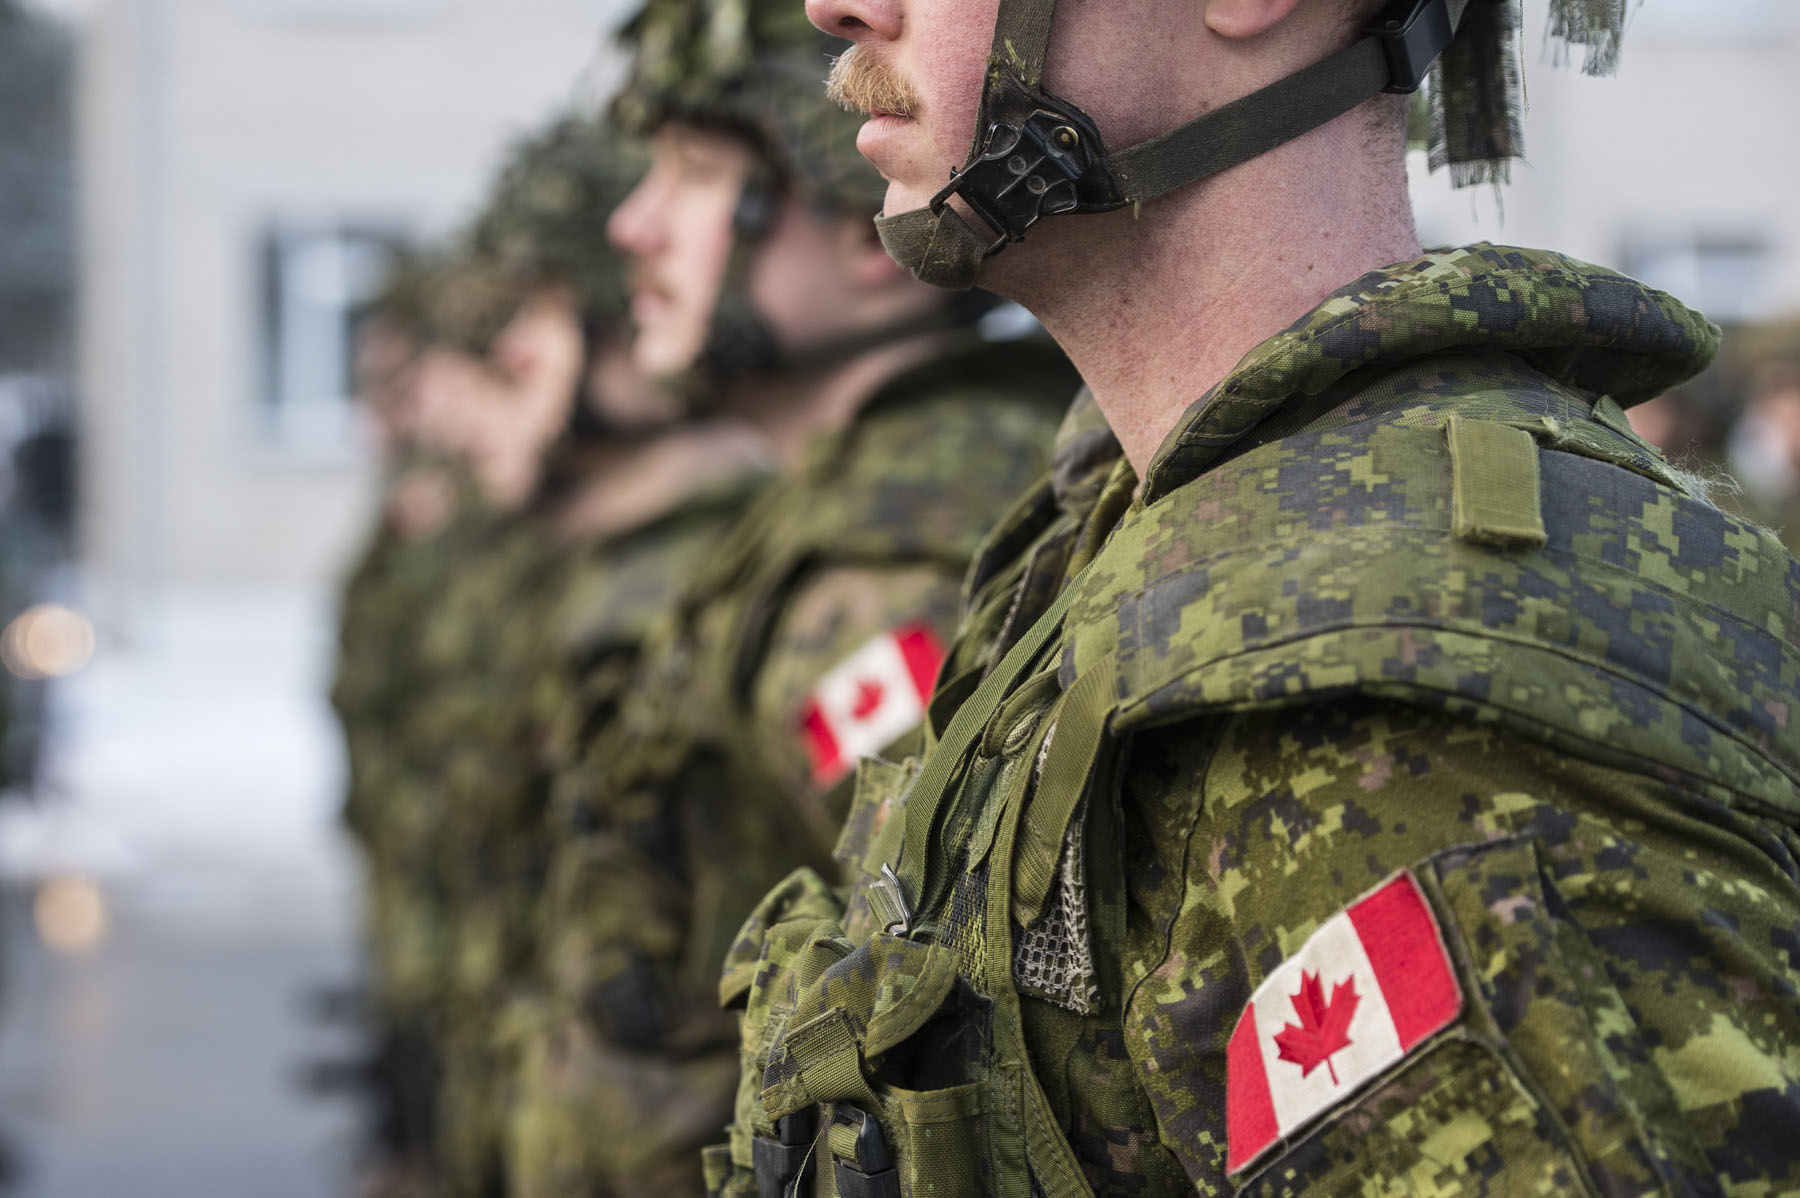 Canada leads NATO's eFP BG Latvia and contributes approximately 450 personnel to the battlegroup as part of Operation REASSURANCE.